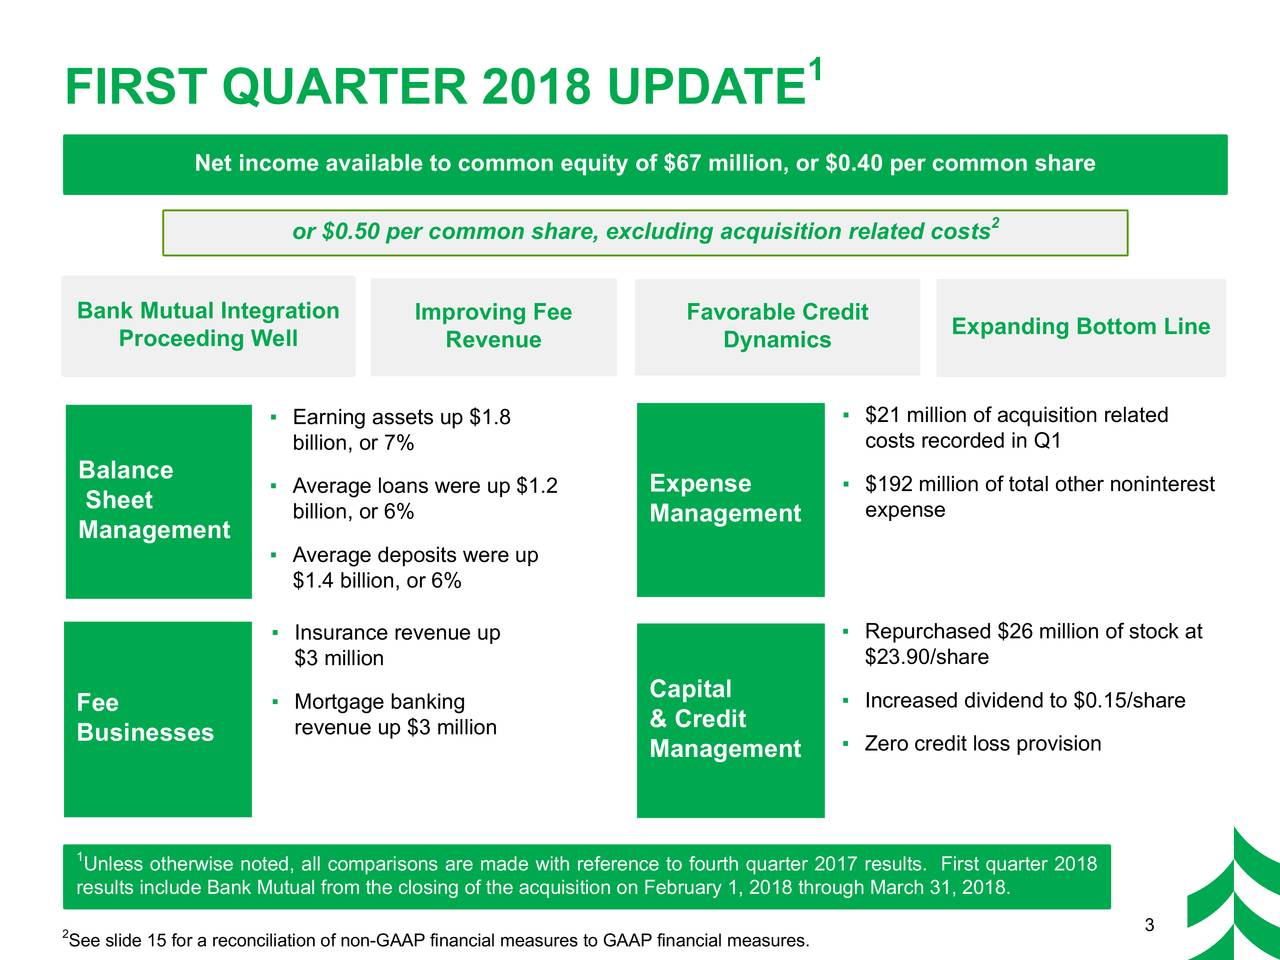 FIRST QUARTER 2018 UPDATE Net income available to common equity of $67 million, or $0.40 per common share or $0.50 per common share, excluding acquisition related costs 2 Bank Mutual Integration Improving Fee Favorable Credit Proceeding Well Revenue Dynamics Expanding Bottom Line ▪ $21 million of acquisition related ▪ Earning assets up $1.8 billion, or 7% costs recorded in Q1 Balance ▪ $192 million of total other noninterest Sheet ▪ Average loans were up $1.2 Expense billion, or 6% Management expense Management ▪ Average deposits were up $1.4 billion, or 6% ▪ Insurance revenue up ▪ Repurchased $26 million of stock at $3 million $23.90/share Fee ▪ Mortgage banking Capital ▪ Increased dividend to $0.15/share Businesses revenue up $3 million & Credit Management ▪ Zero credit loss provision Unless otherwise noted, all comparisons are made with reference to fourth quarter 2017 results. First quarter 2018 results include Bank Mutual from the closing of the acquisition on February 1, 2018 through March 31, 2018. 2See slide 15 for a reconciliation of non-GAAP financial measures to GAAP financial measures. 3